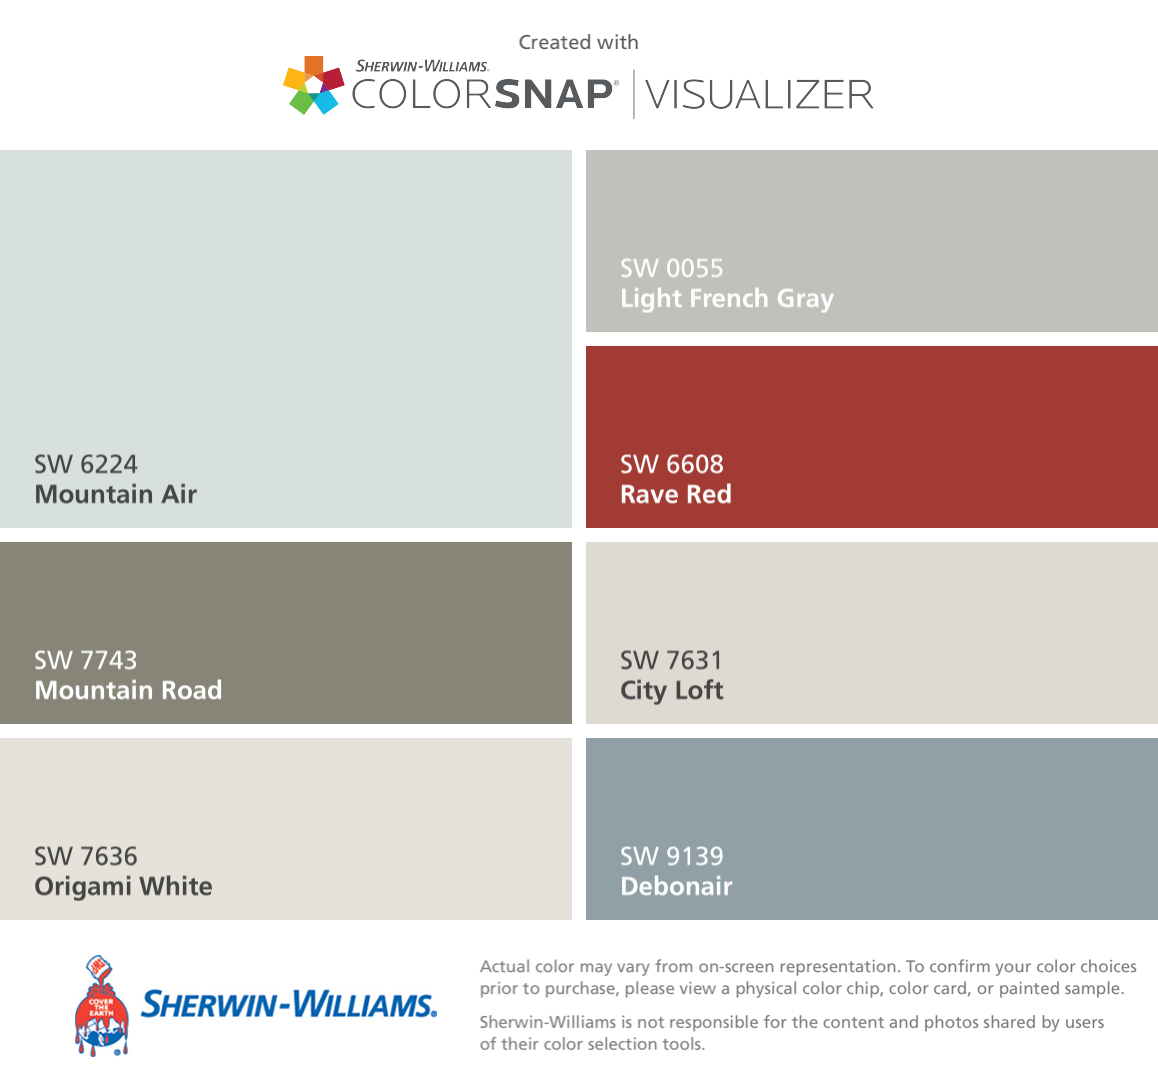 I found these colors with ColorSnap® Visualizer for iPhone by Sherwin-Williams: Mountain Air (SW 6224), Mountain Road (SW 7743), Origami White (SW 7636), Light French Gray (SW 0055), Rave Red (SW 6608), City Loft (SW 7631), Debonair (SW 9139). #cityloftsherwinwilliams